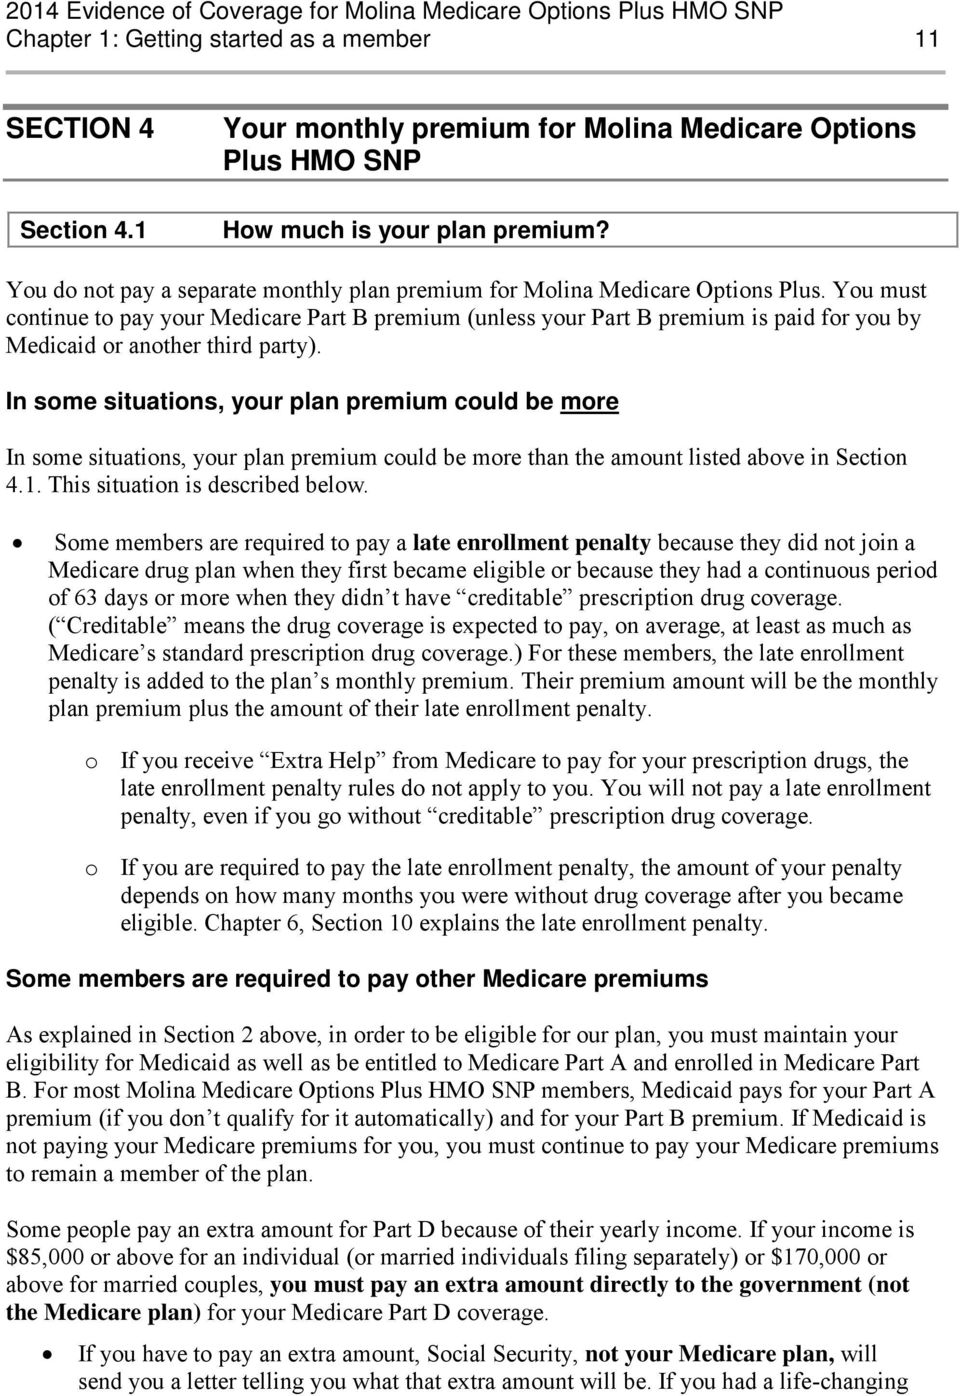 You must continue to pay your Medicare Part B premium (unless your Part B premium is paid for you by Medicaid or another third party).